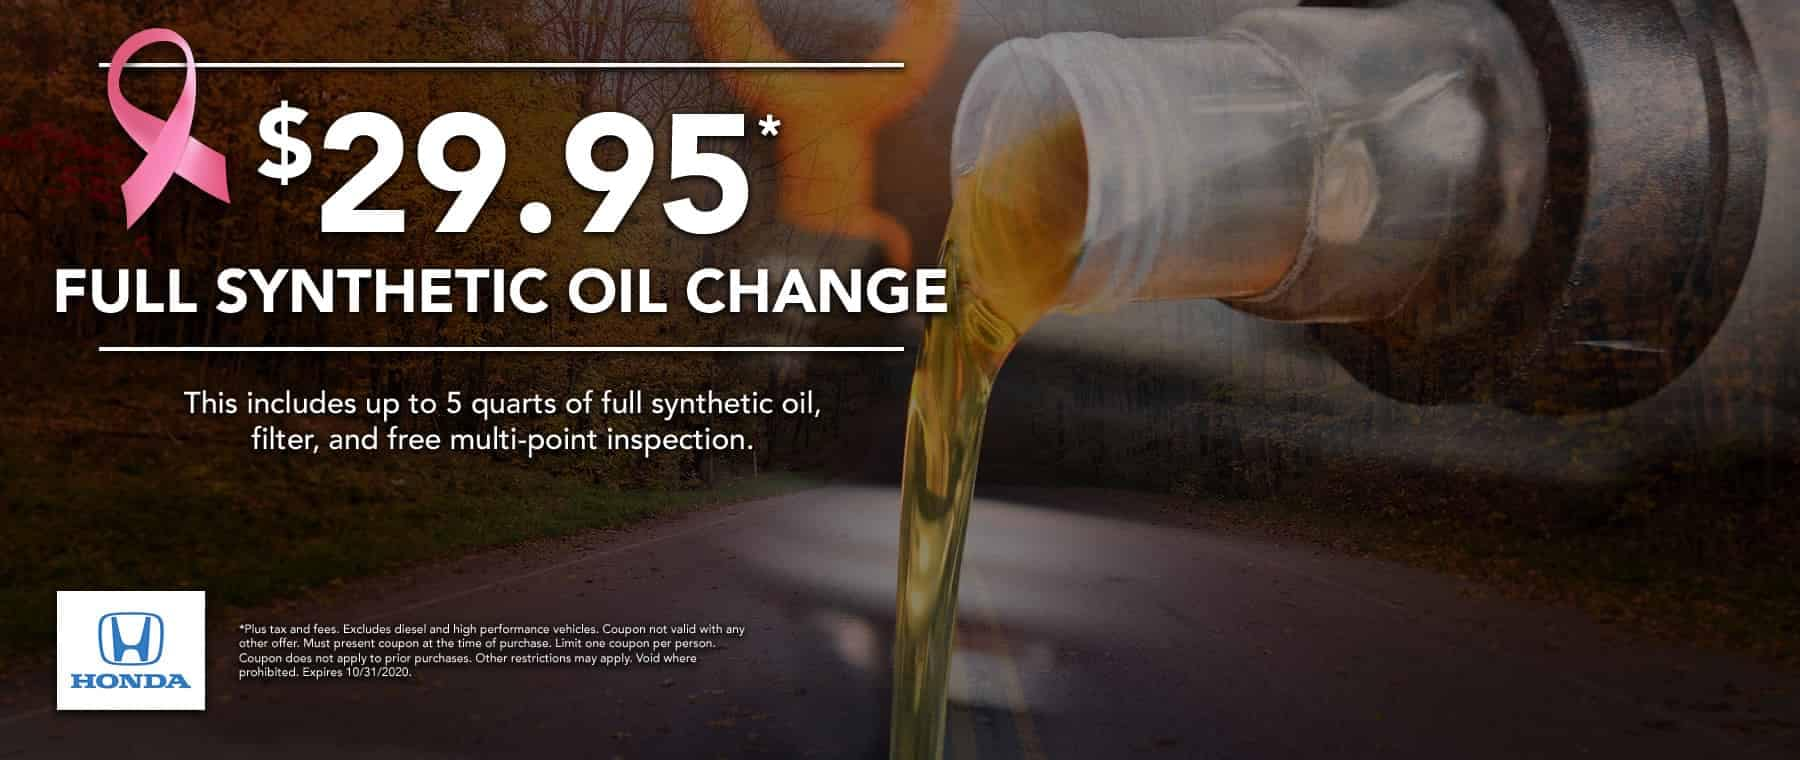 $29.95 oil change special